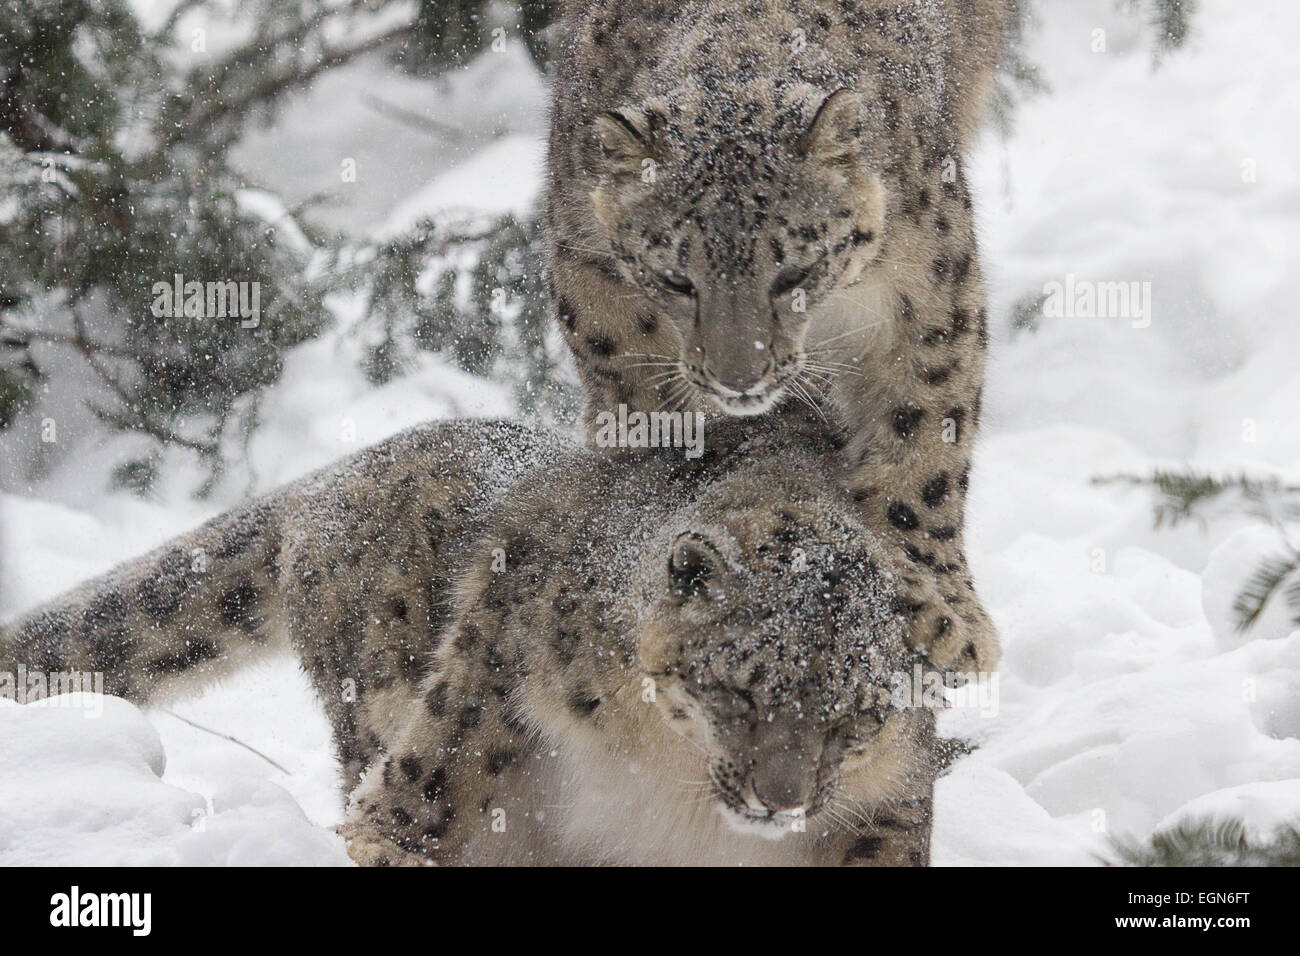 Snow Mates- A pair of snow leopards enjoy each other as they romp in the freshly fallen snow - Stock Image